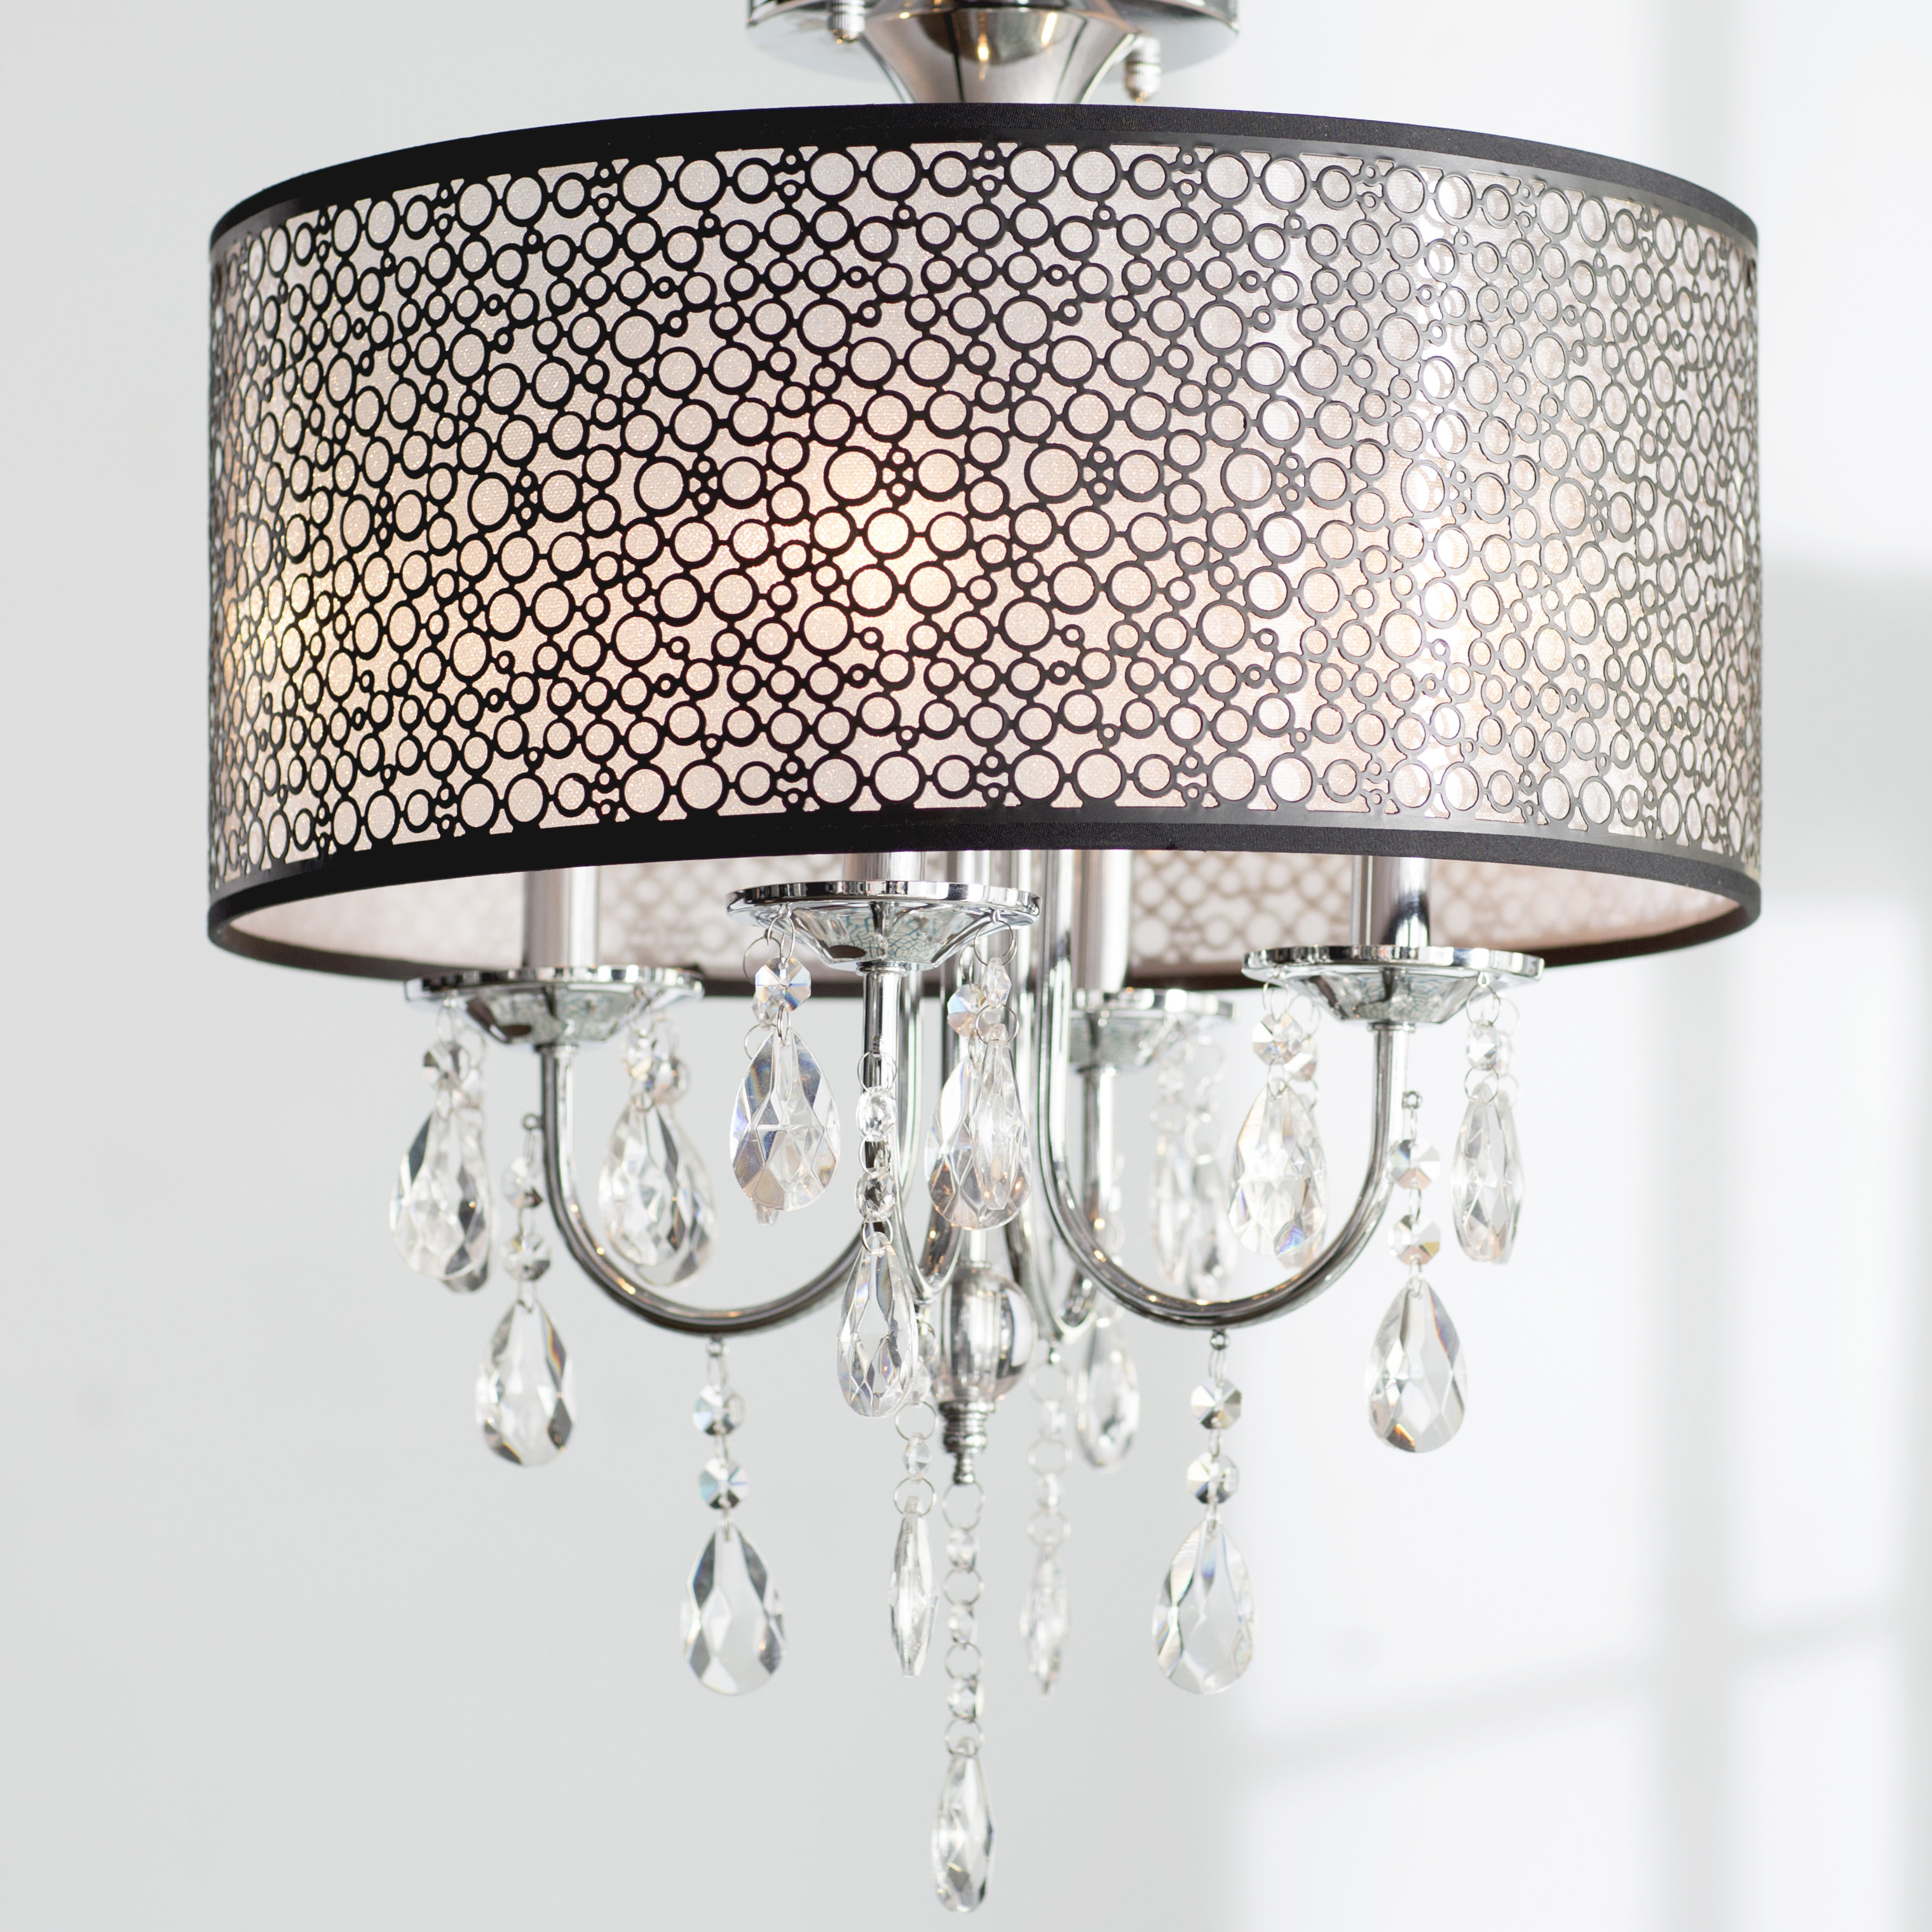 Newest Willa Arlo Interiors Sinead 4 Light Chandelier & Reviews Pertaining To Gisselle 4 Light Drum Chandeliers (View 18 of 25)